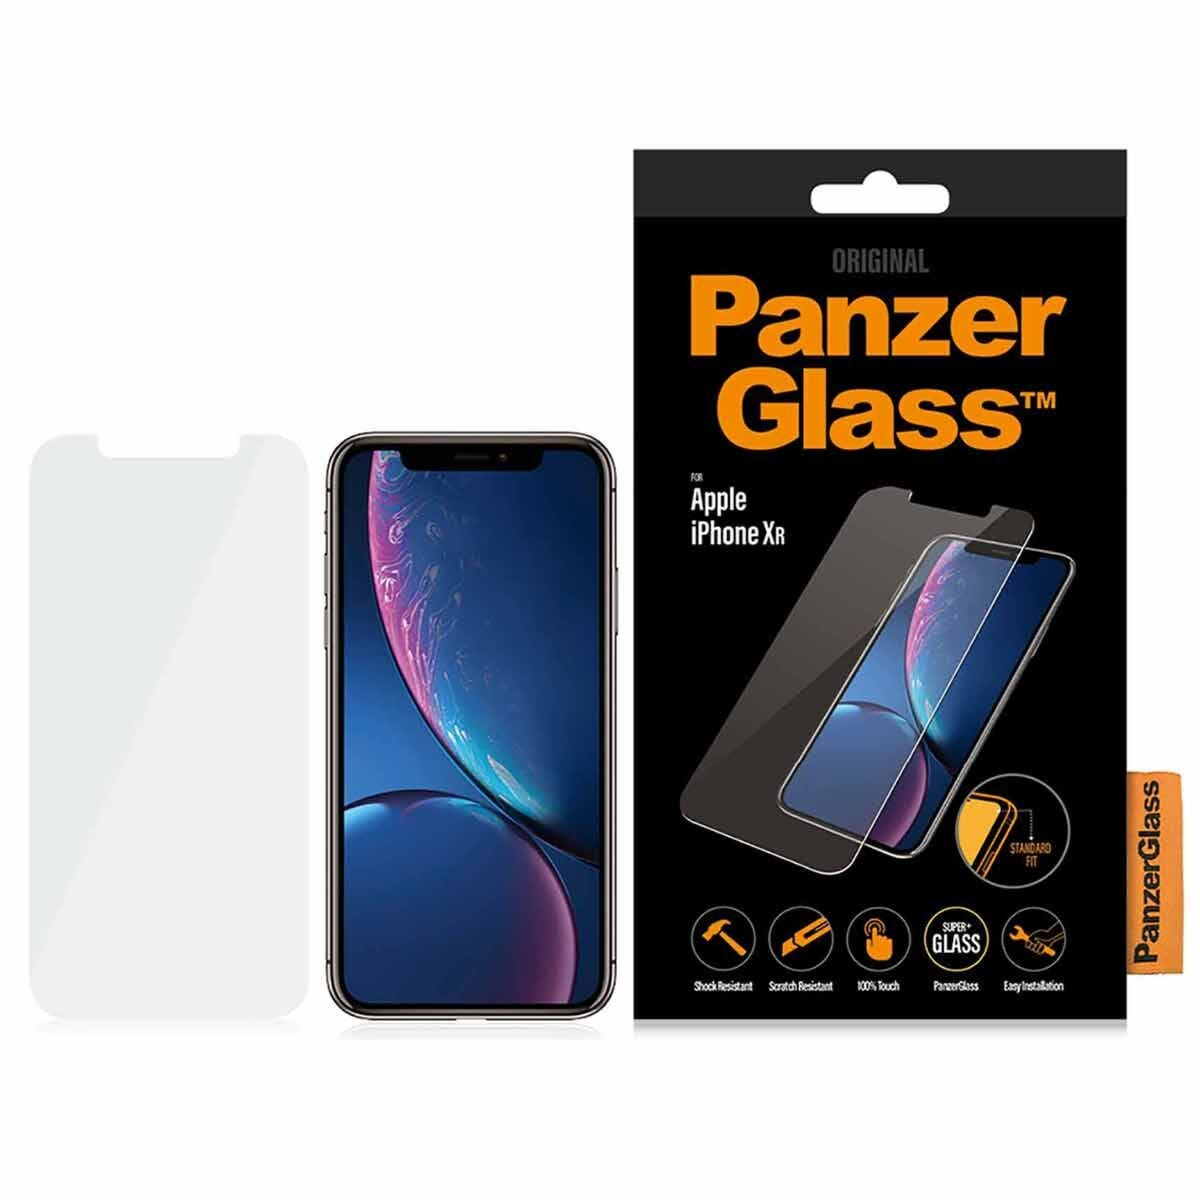 Panzer Glass Screen Protector for iPhone XR